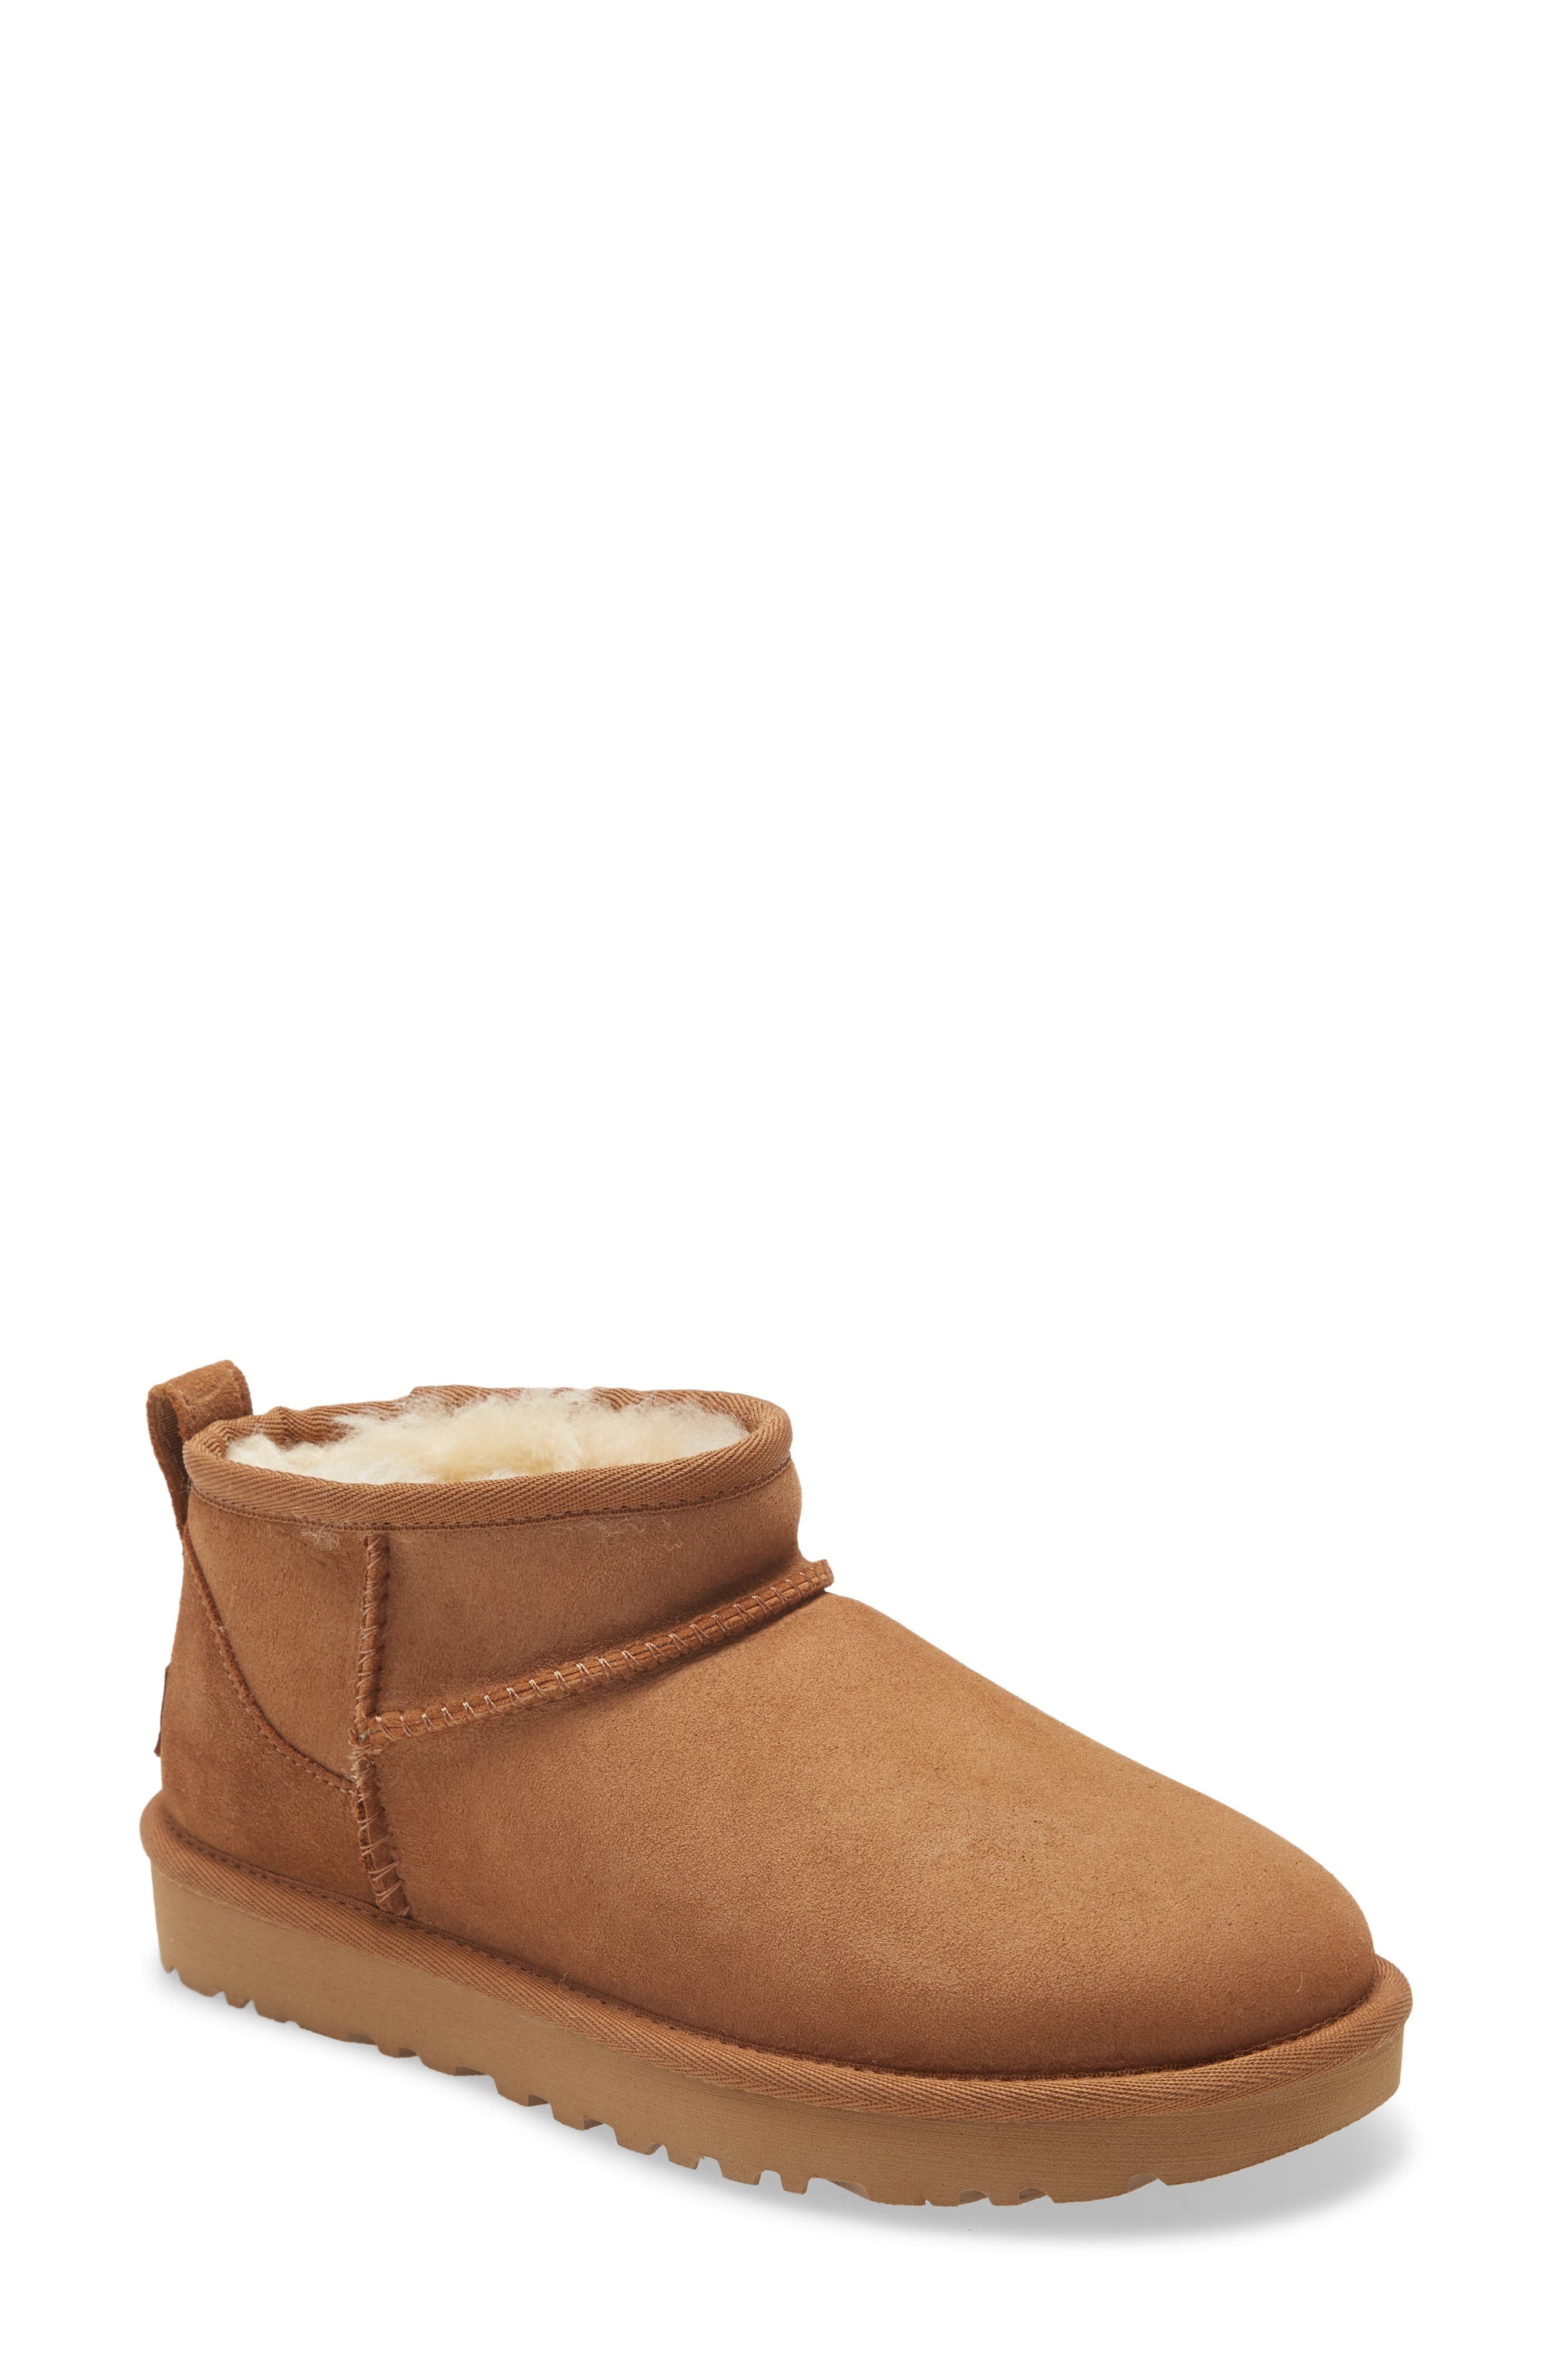 uggs boots at nordstrom